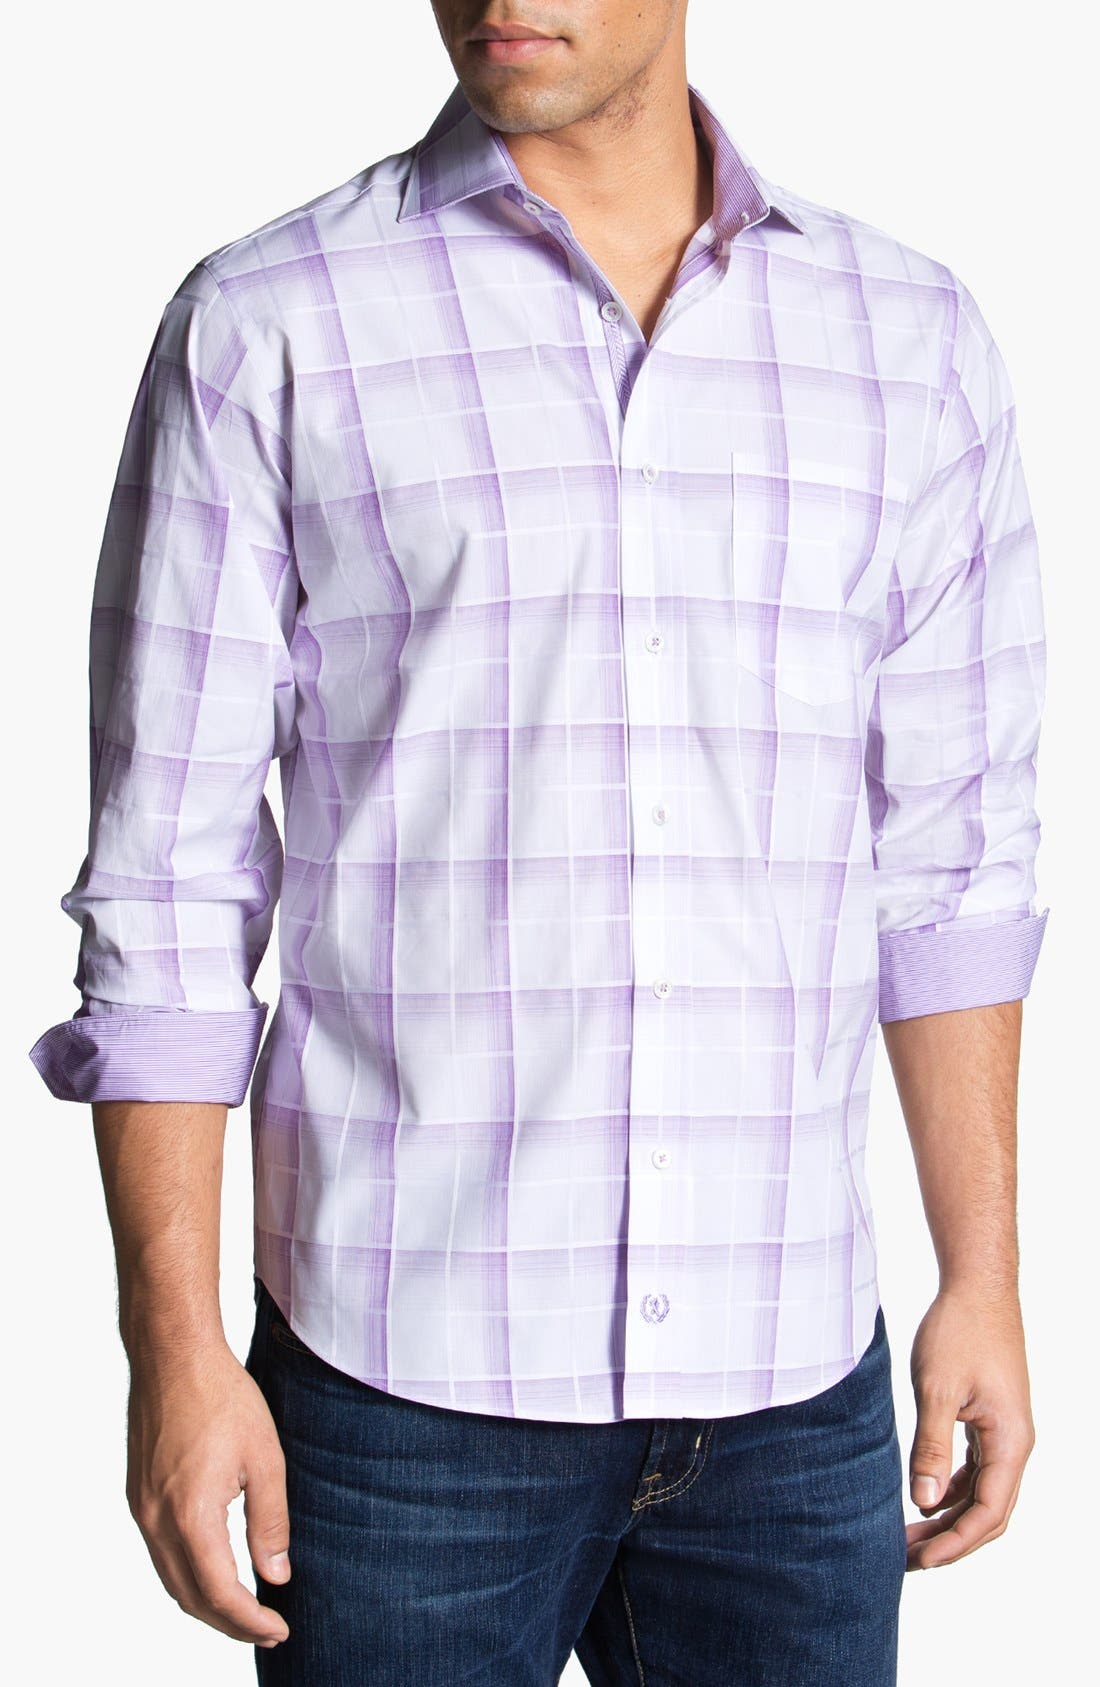 Main Image - Bugatchi Check Classic Fit Cotton Sport Shirt (Tall)